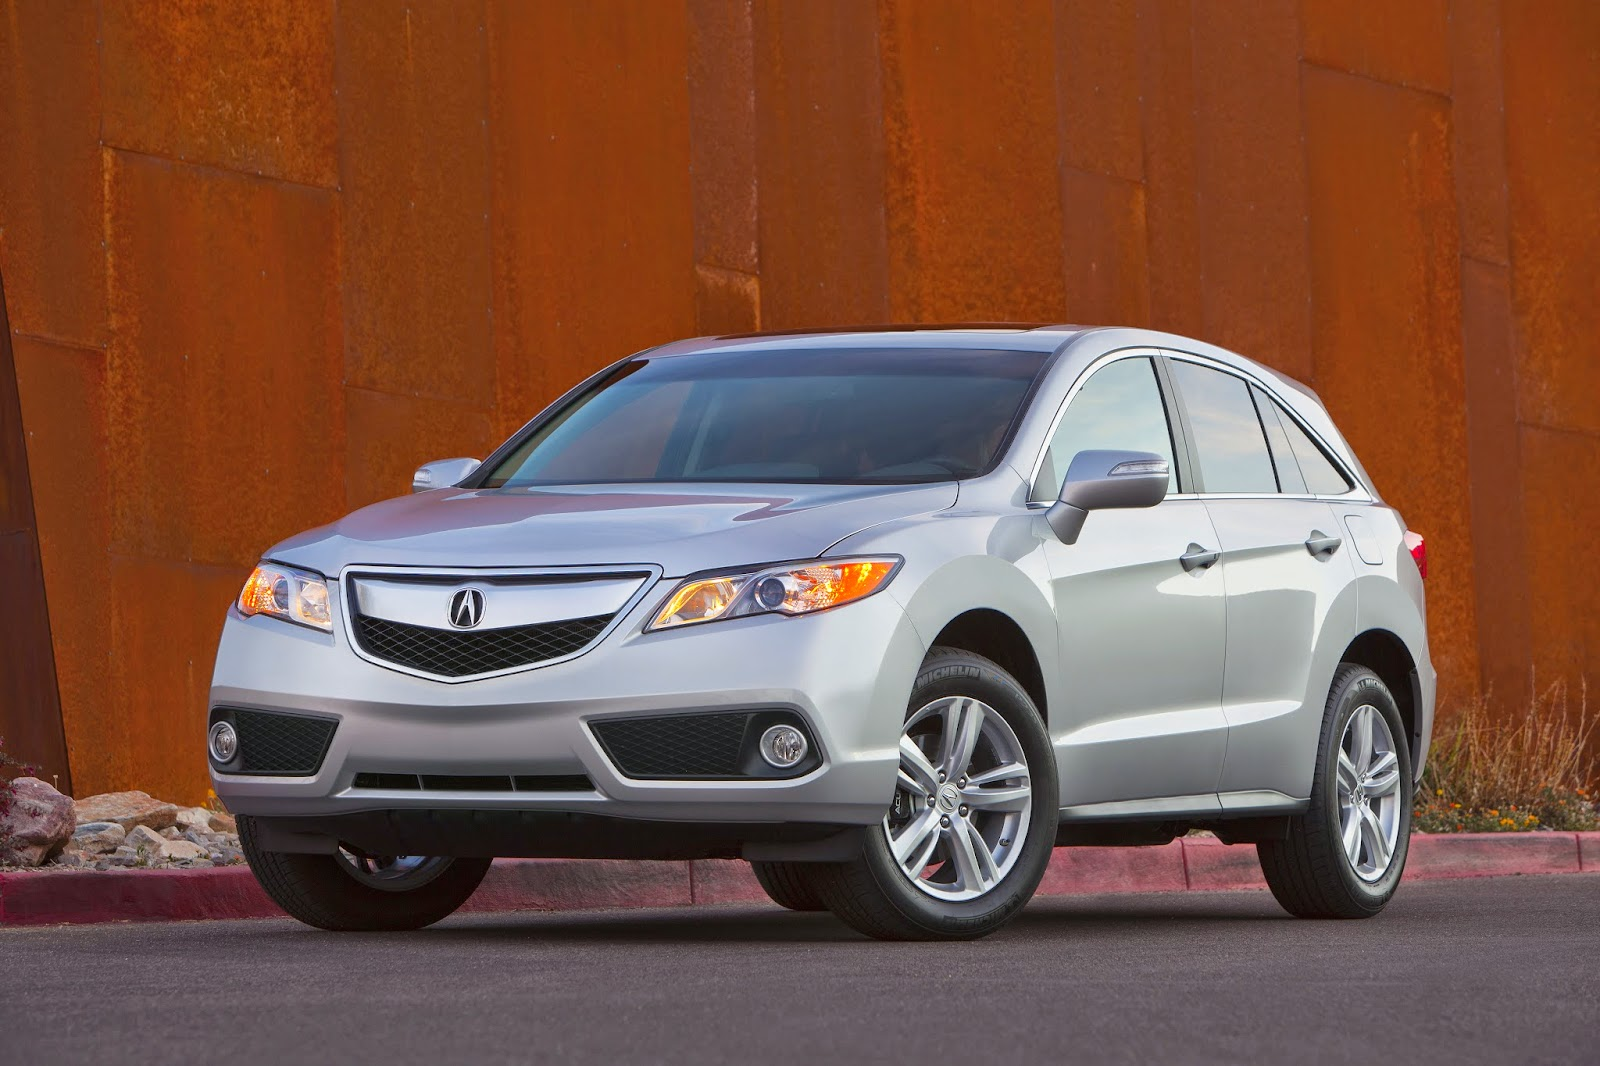 Front 3/4 view of the 2014 Acura RDX